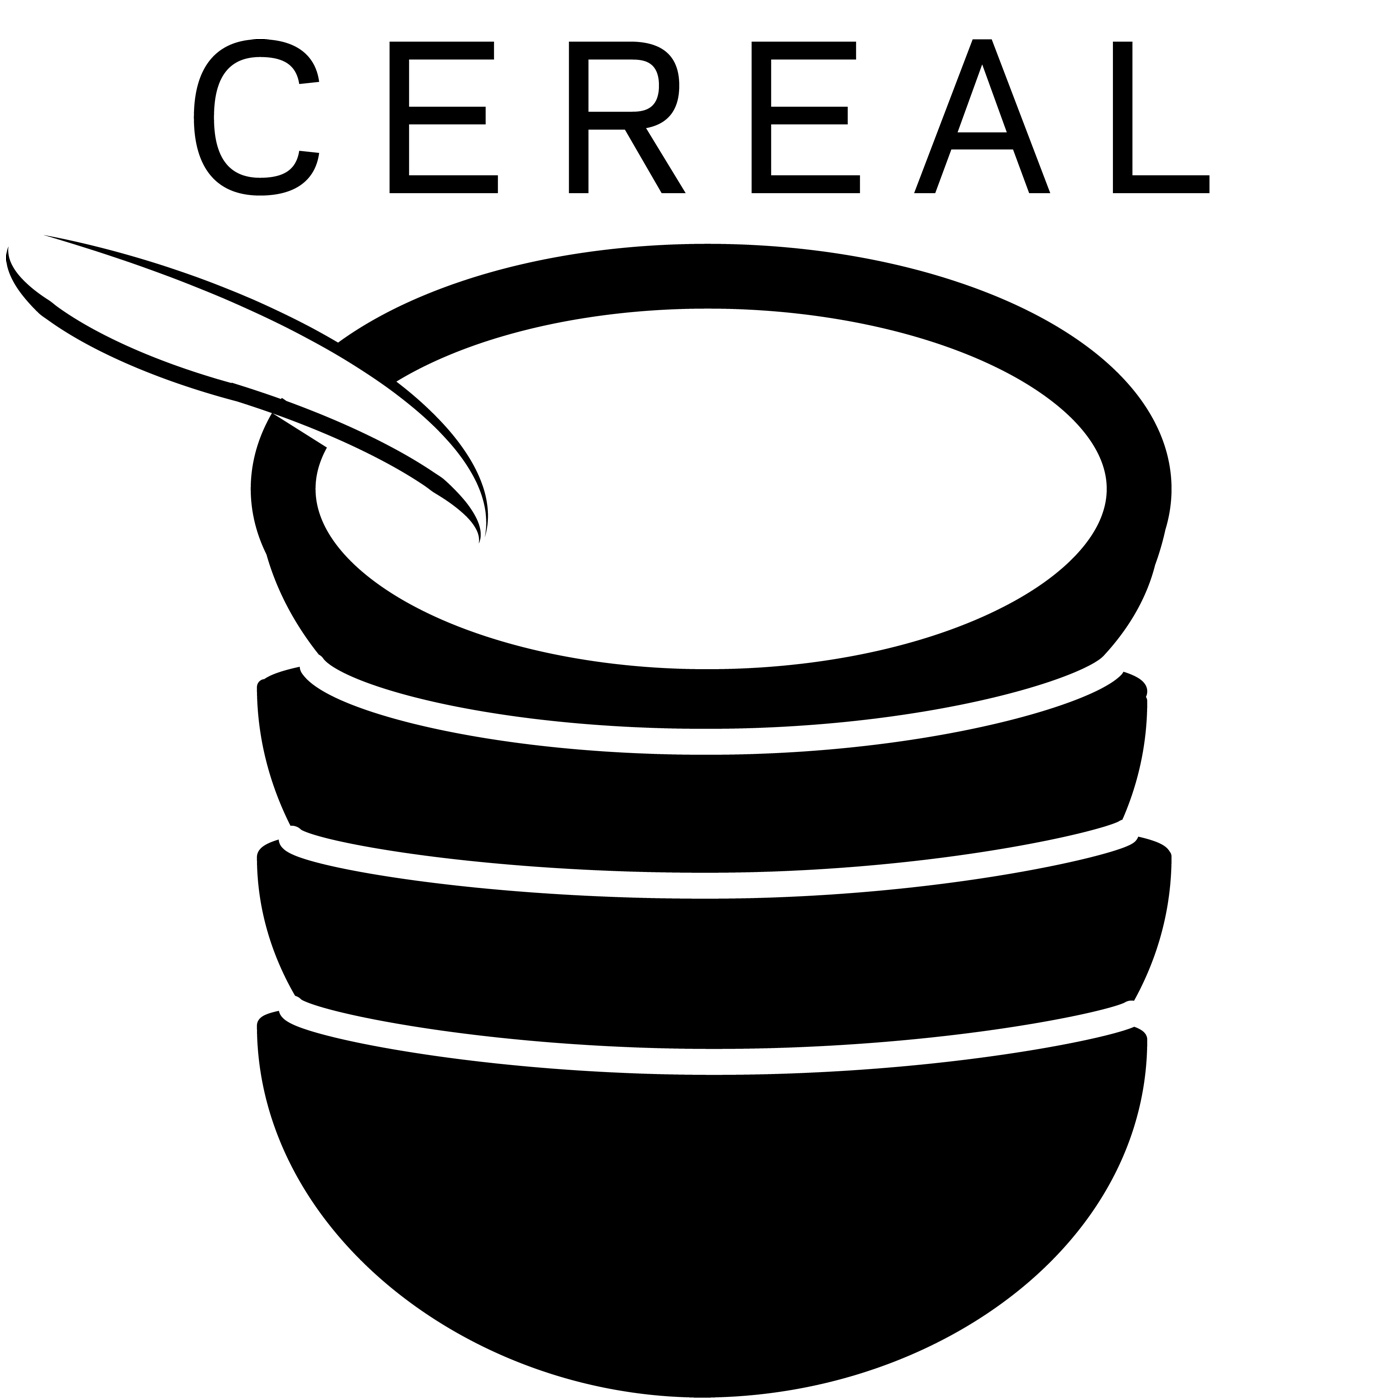 Cereal - THE OMNICAST